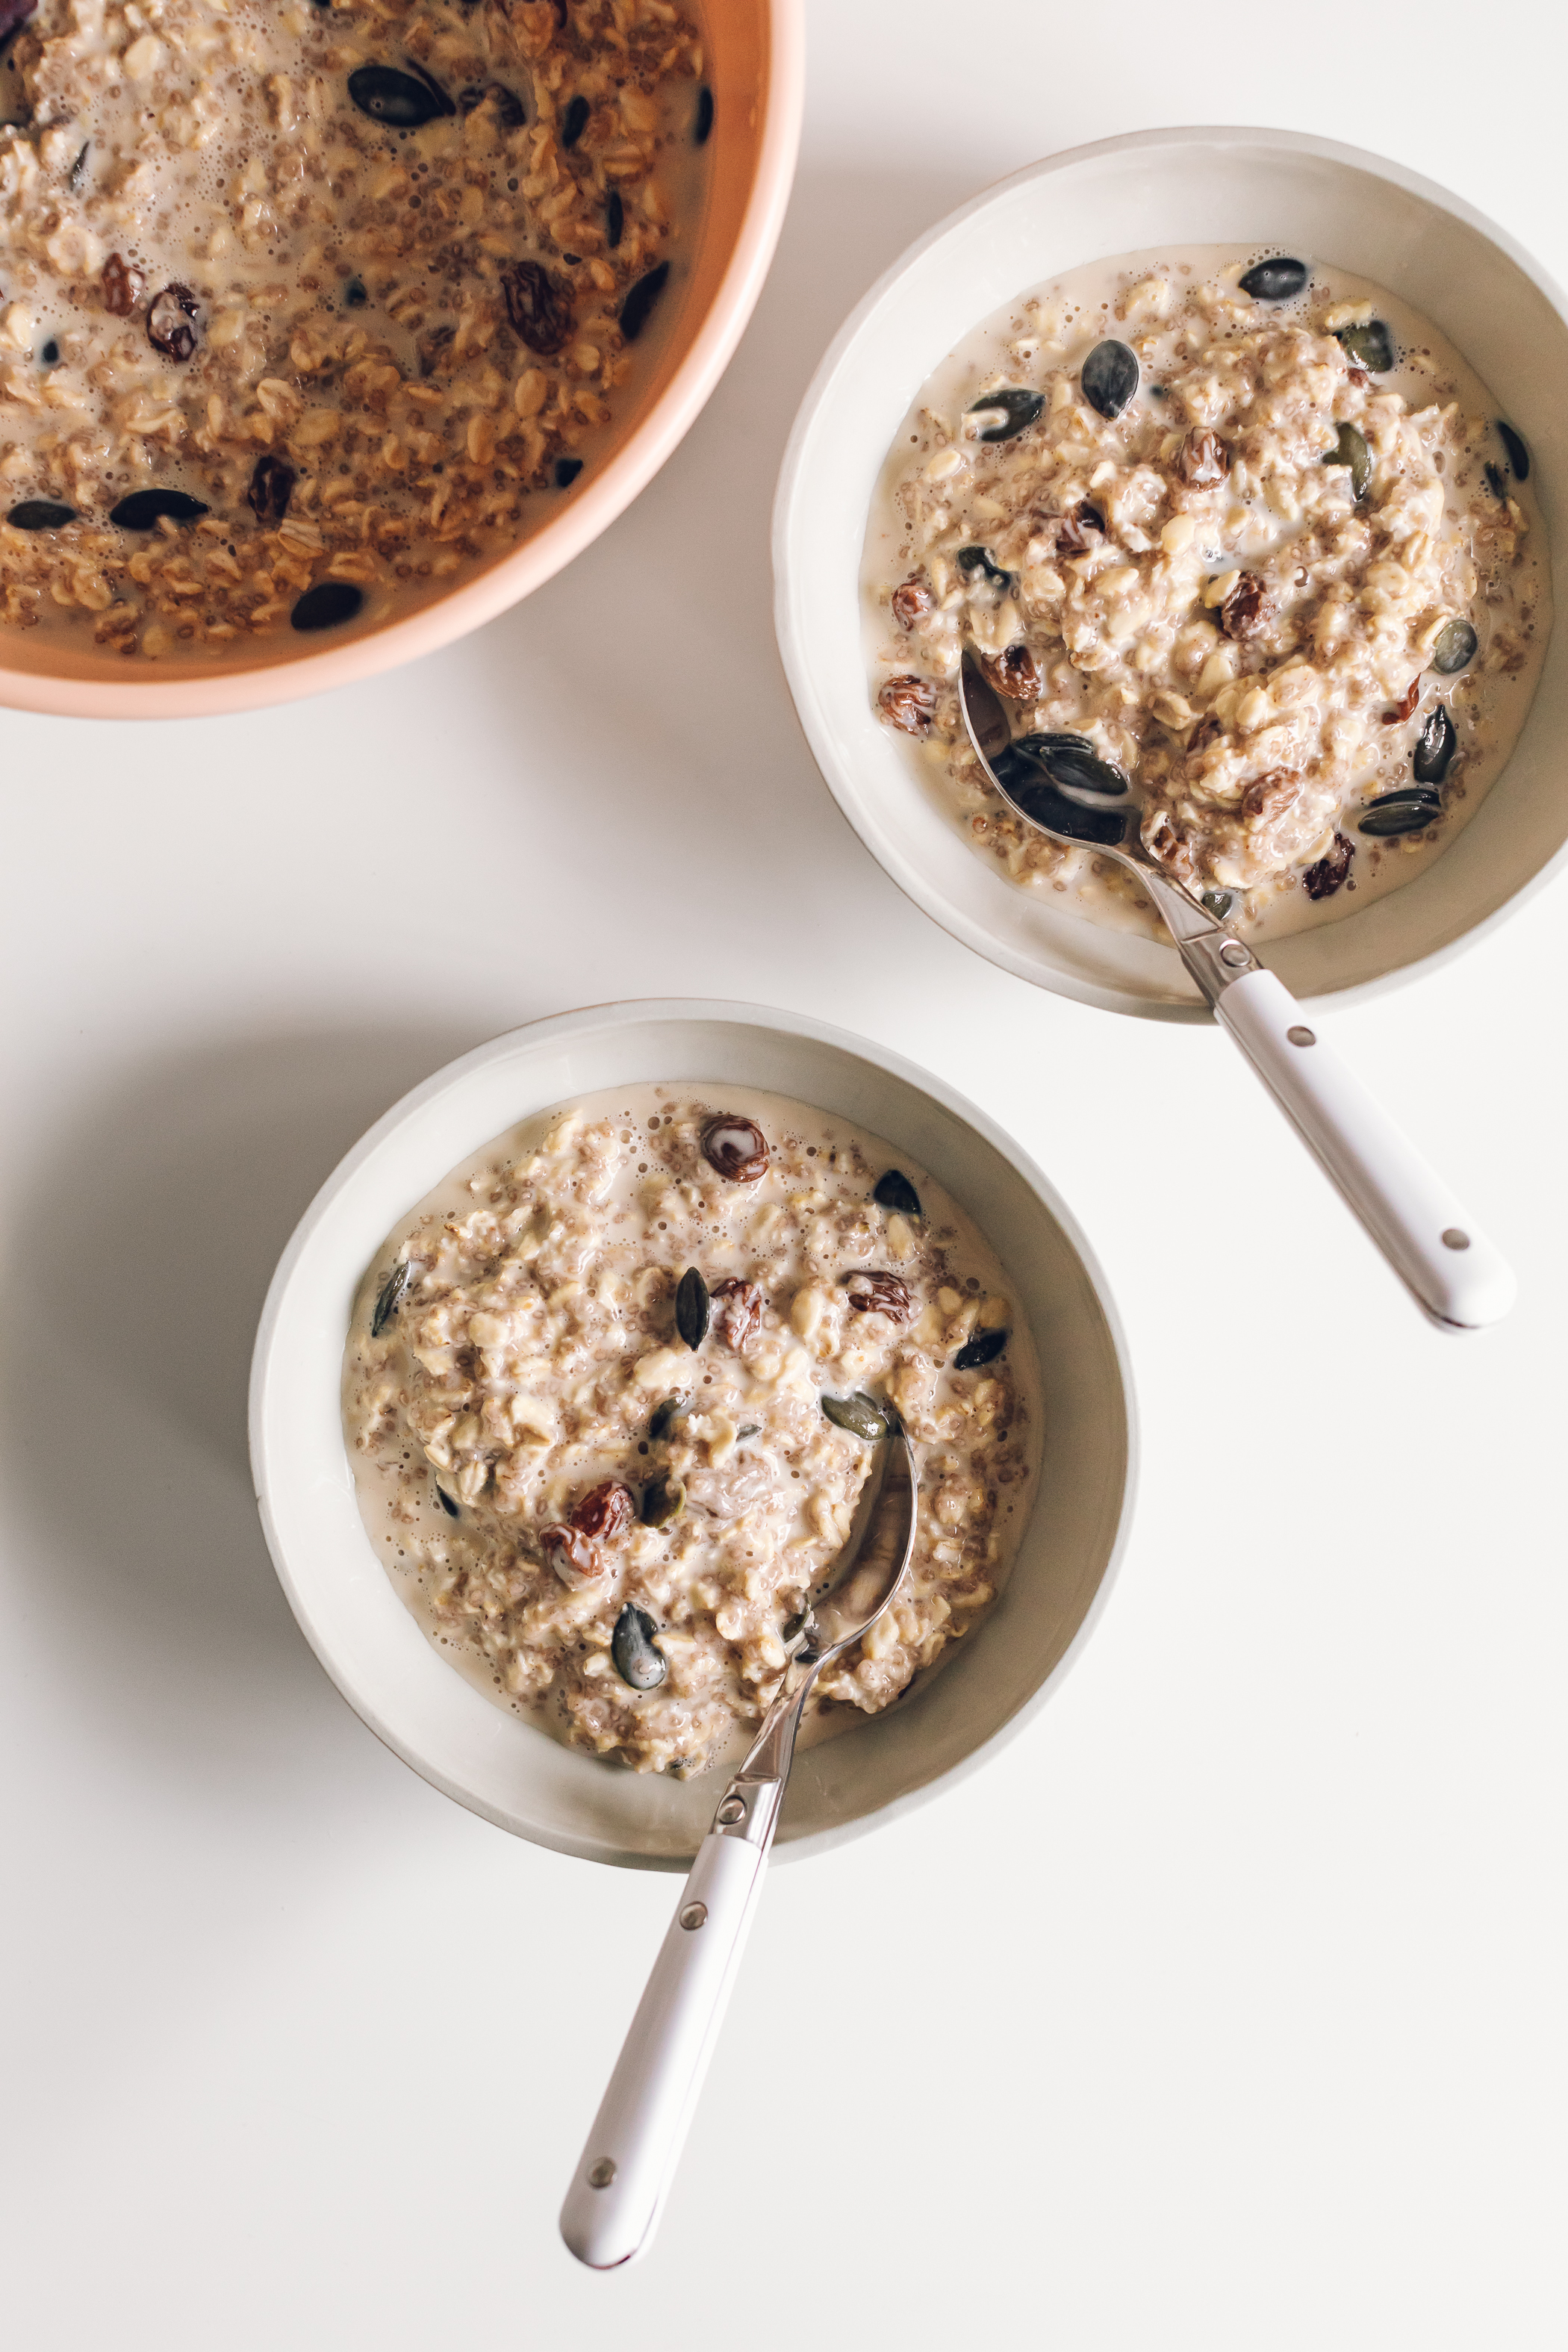 Big Batch Muesli by Jessie May